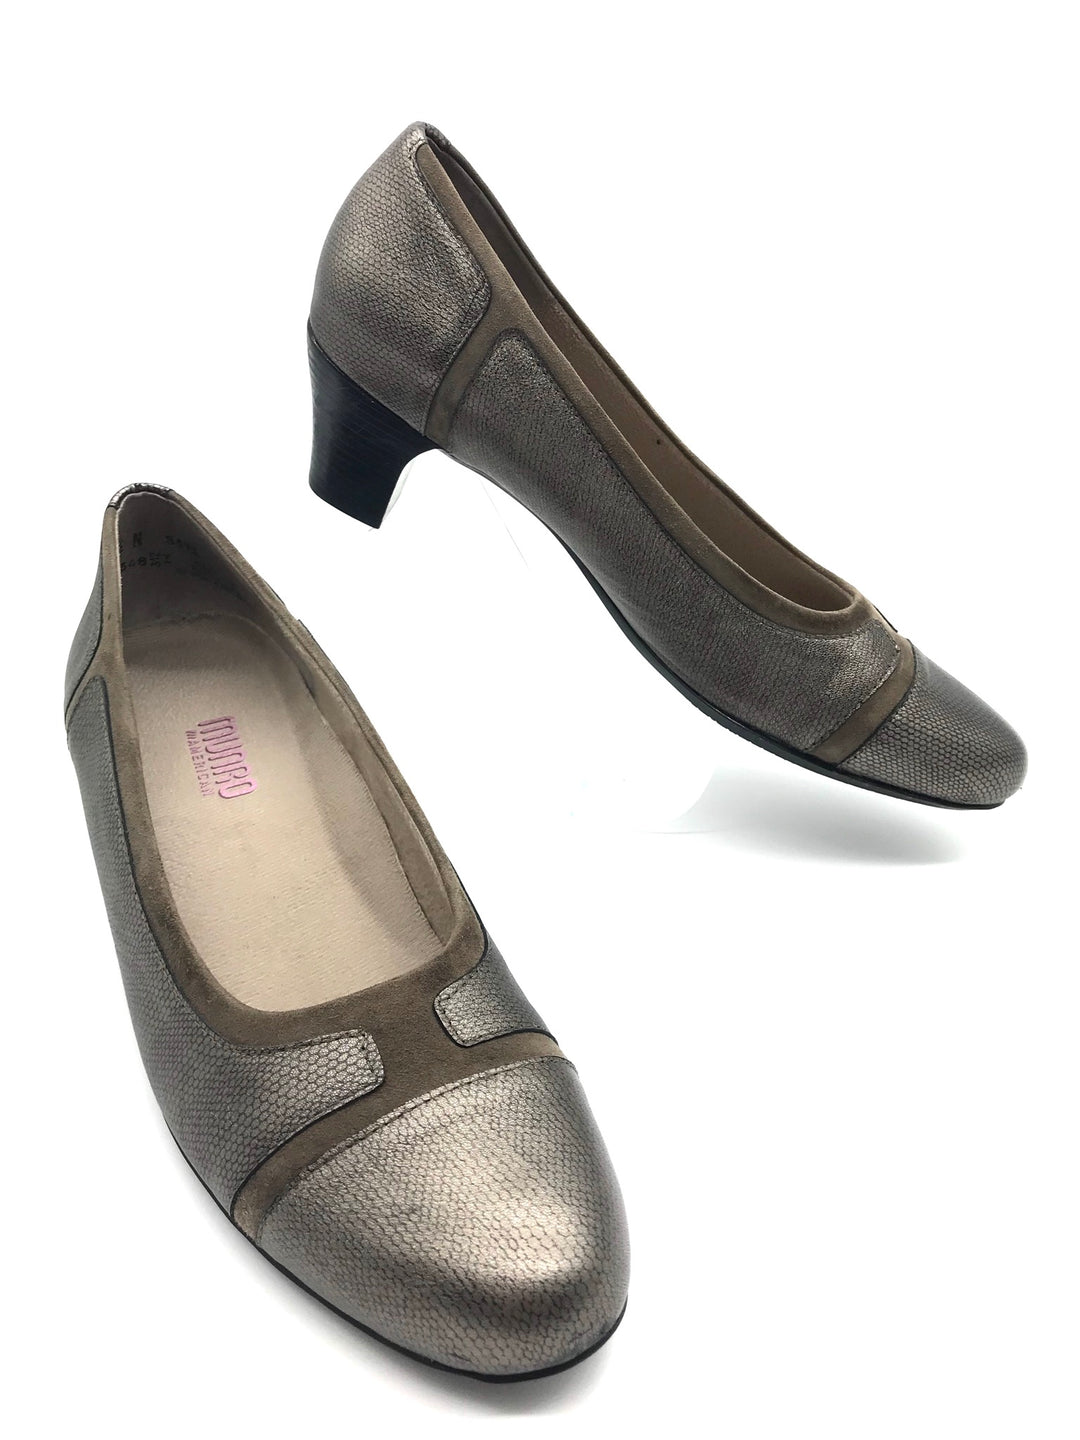 Primary Photo - BRAND:  MUNRO AMERICAN<BR>STYLE: JILLIAN LOW HEELS<BR>COLOR: TAUPE SUEDE<BR>SIZE: 9.5 <BR>SKU: 262-26275-68796<BR>IN EXCELLENT CONDITION